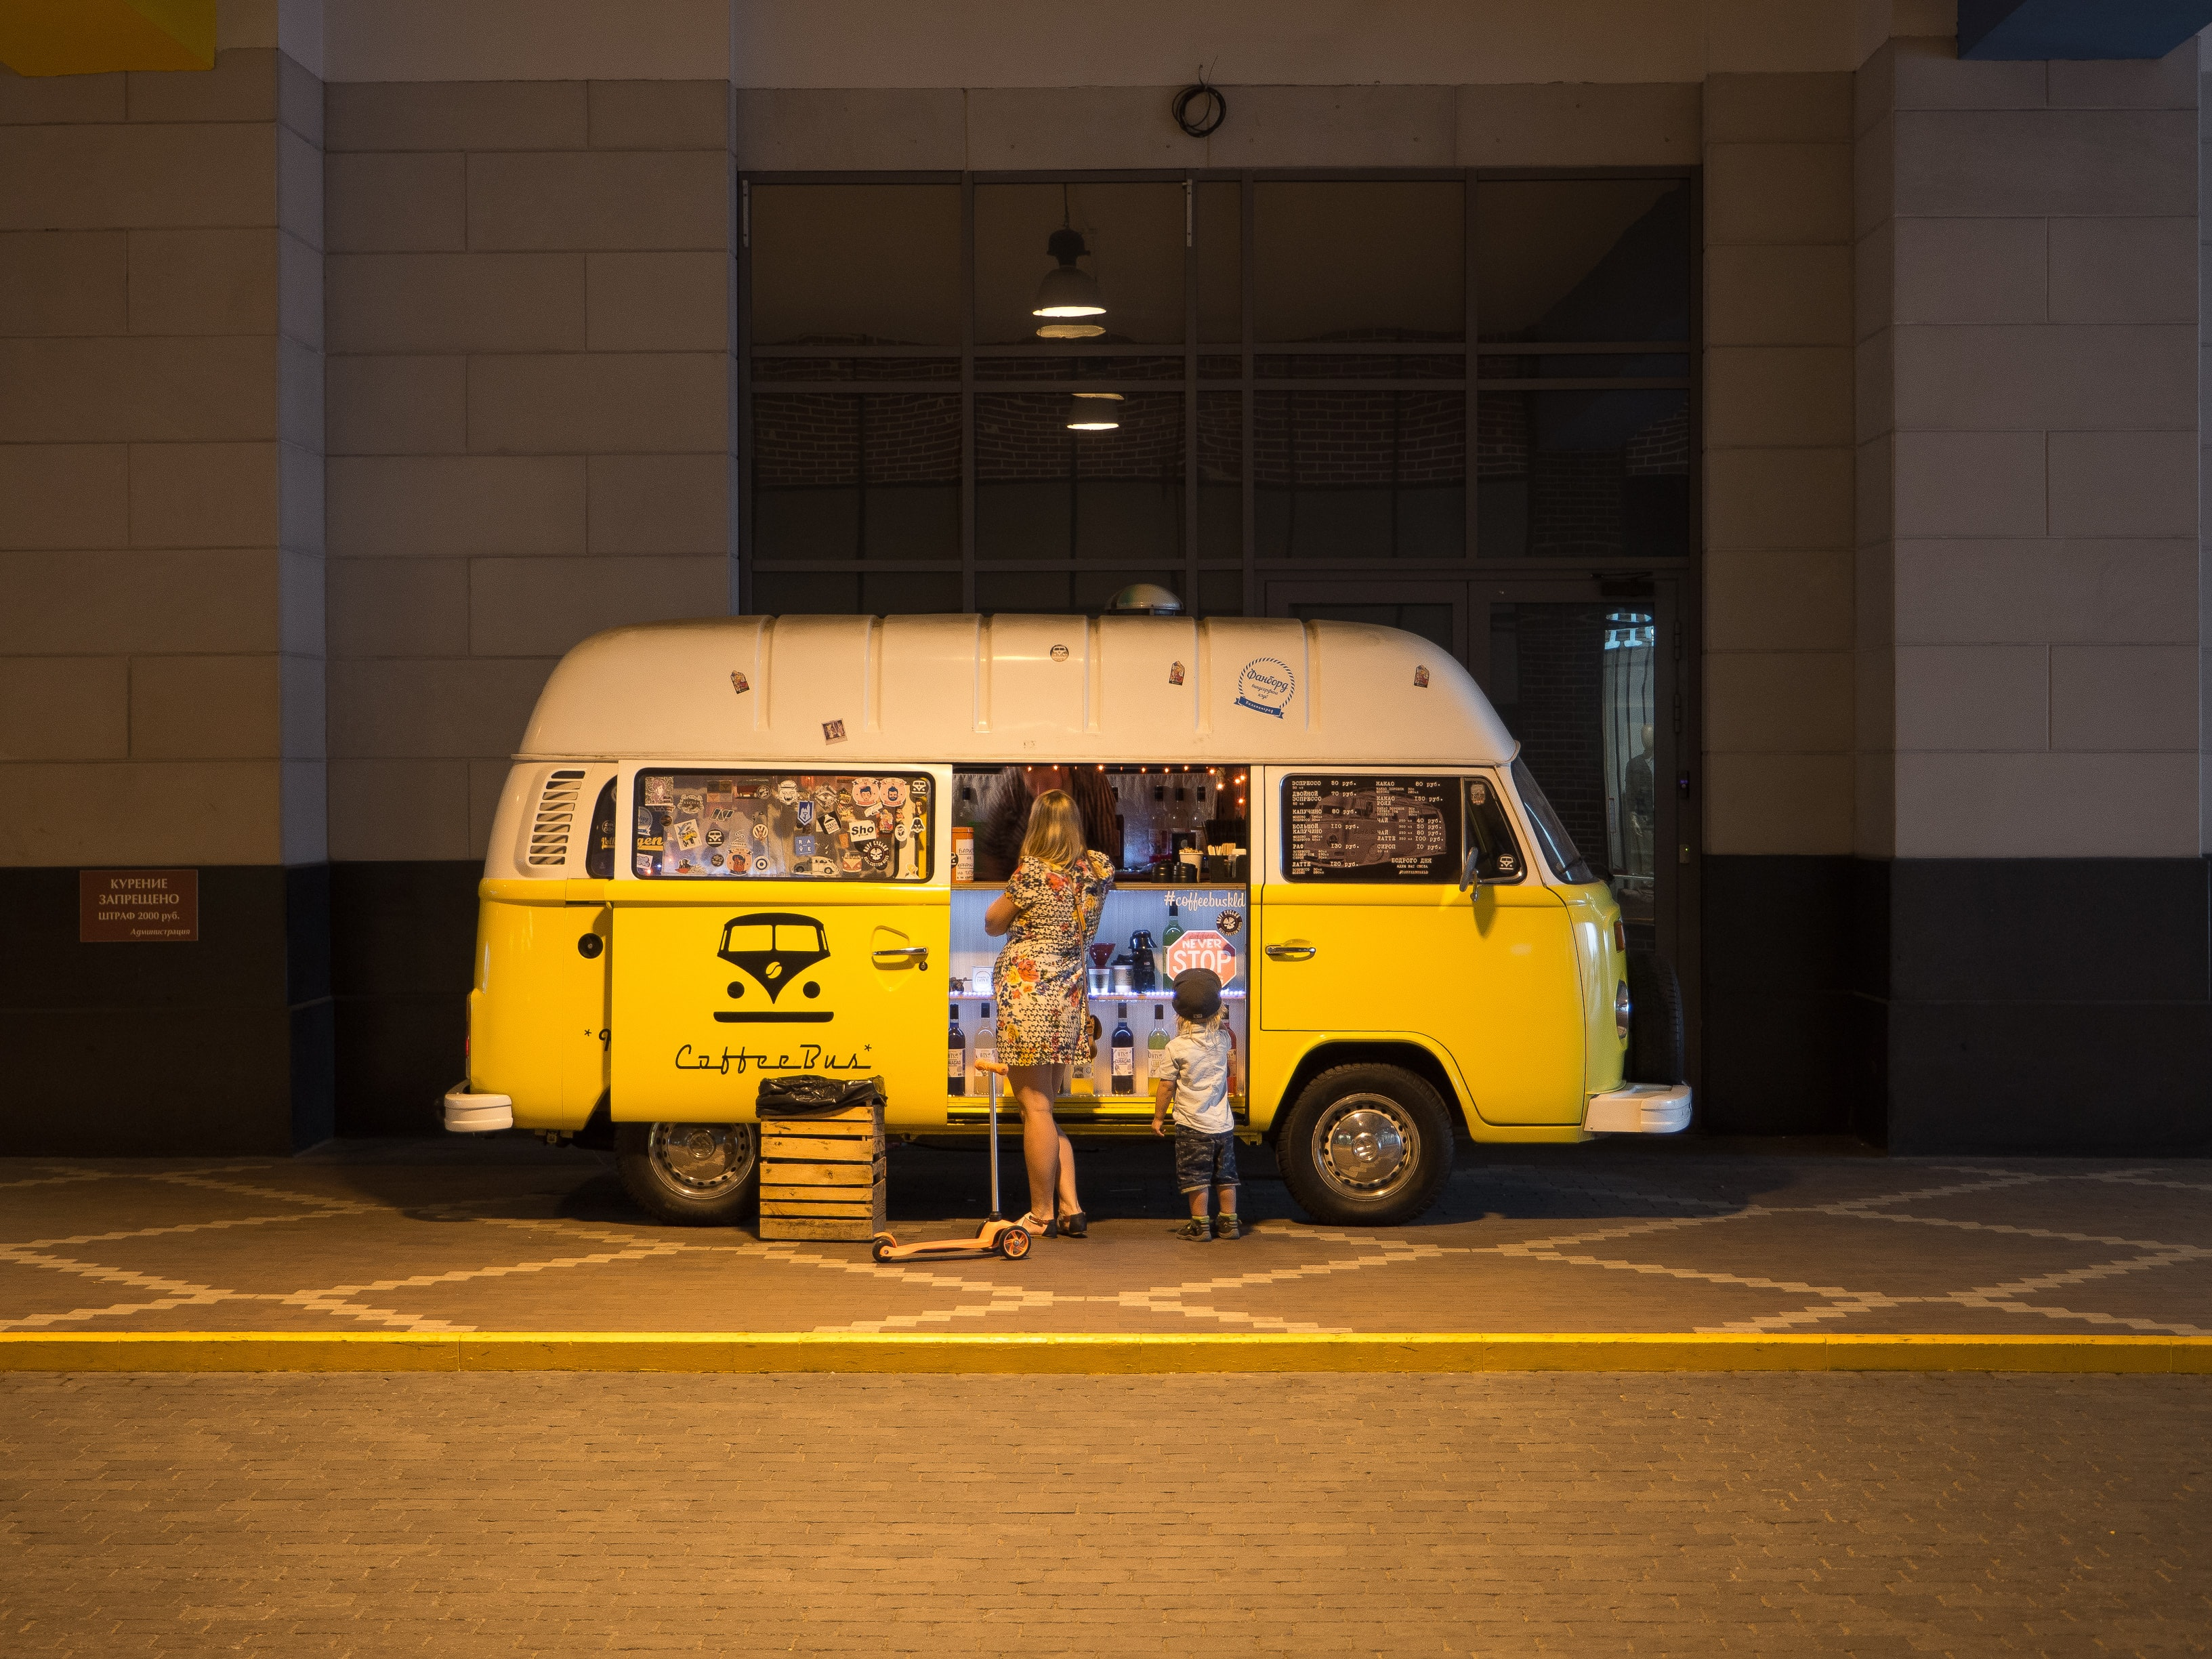 A yellow taxi van parked outside a building.